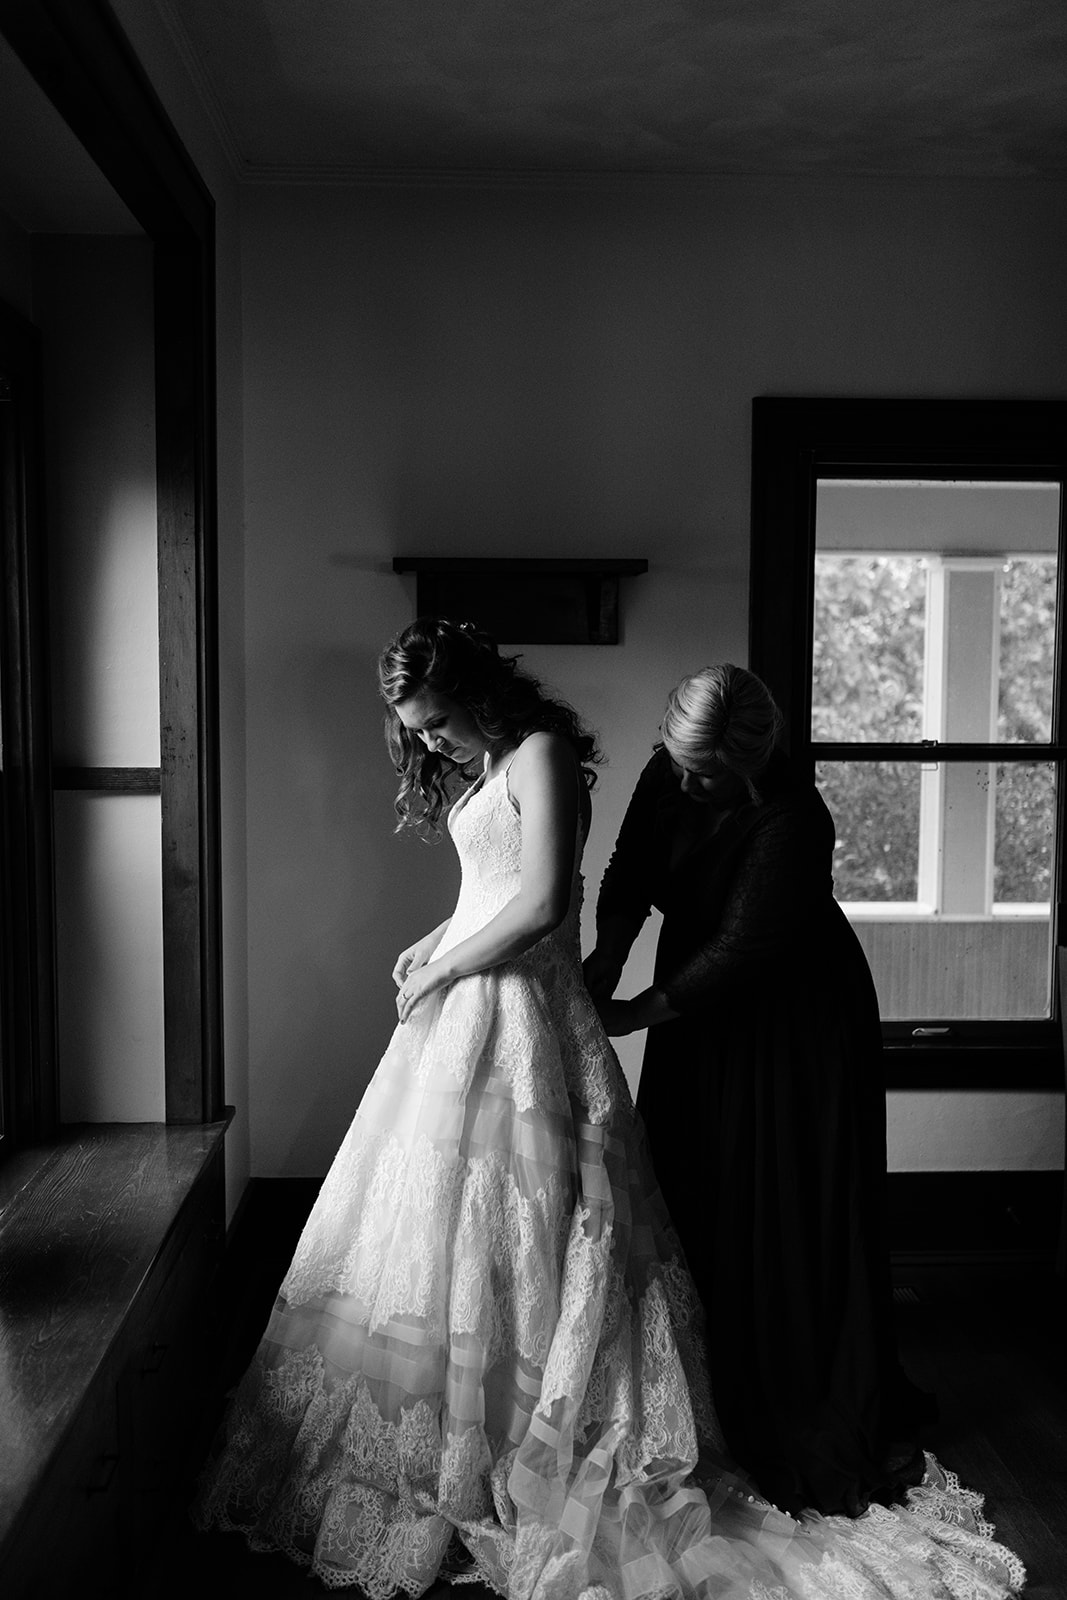 bride getting in wedding dress wellman iowa wedding